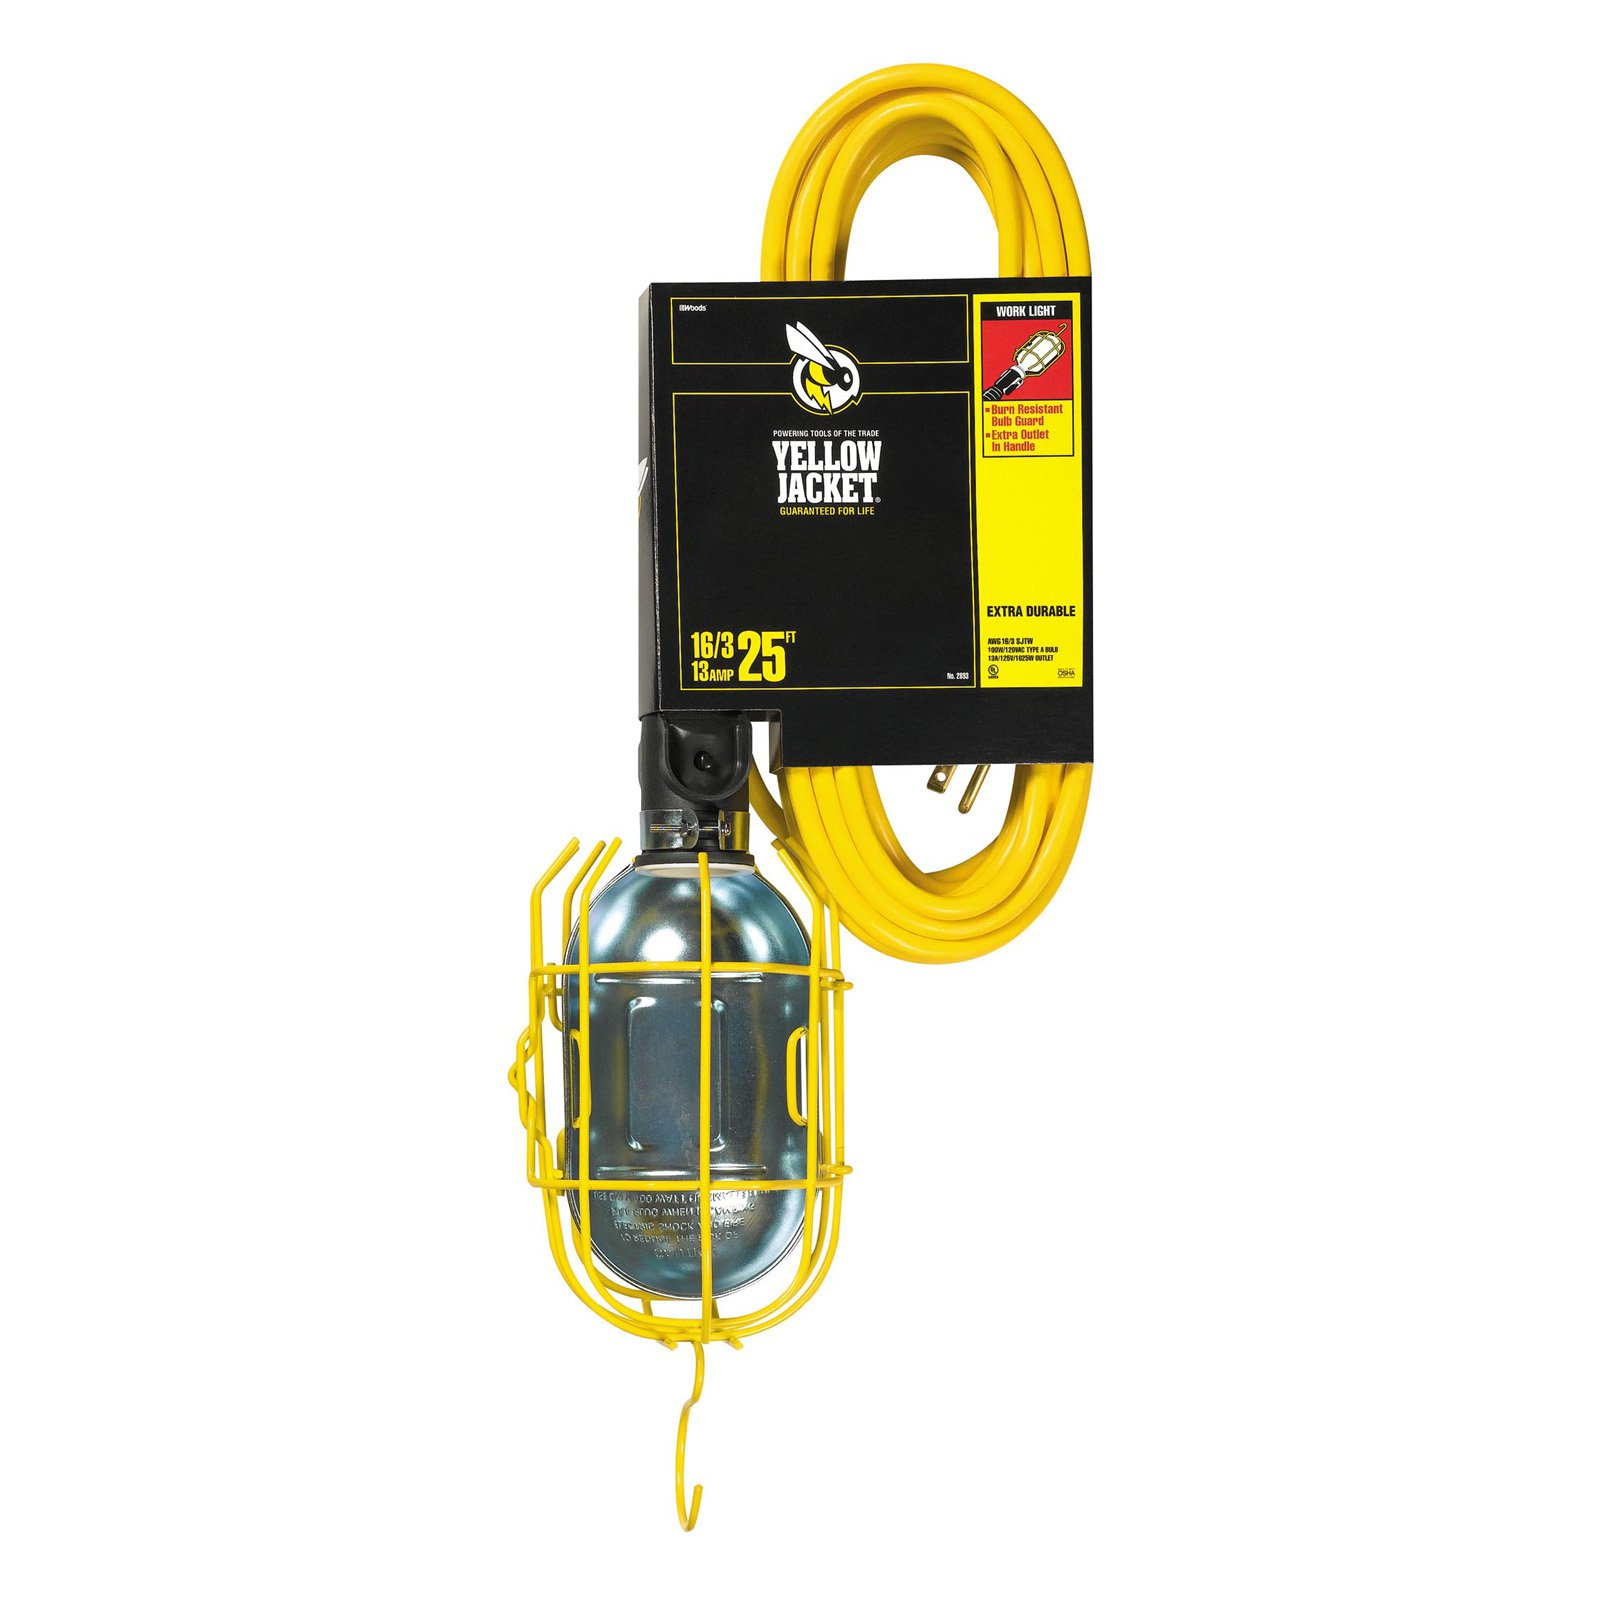 Yellow Jacket 2893 16/3 SJTW Trouble Light Work Light with Metal Guard and Outlet, 25-Feet